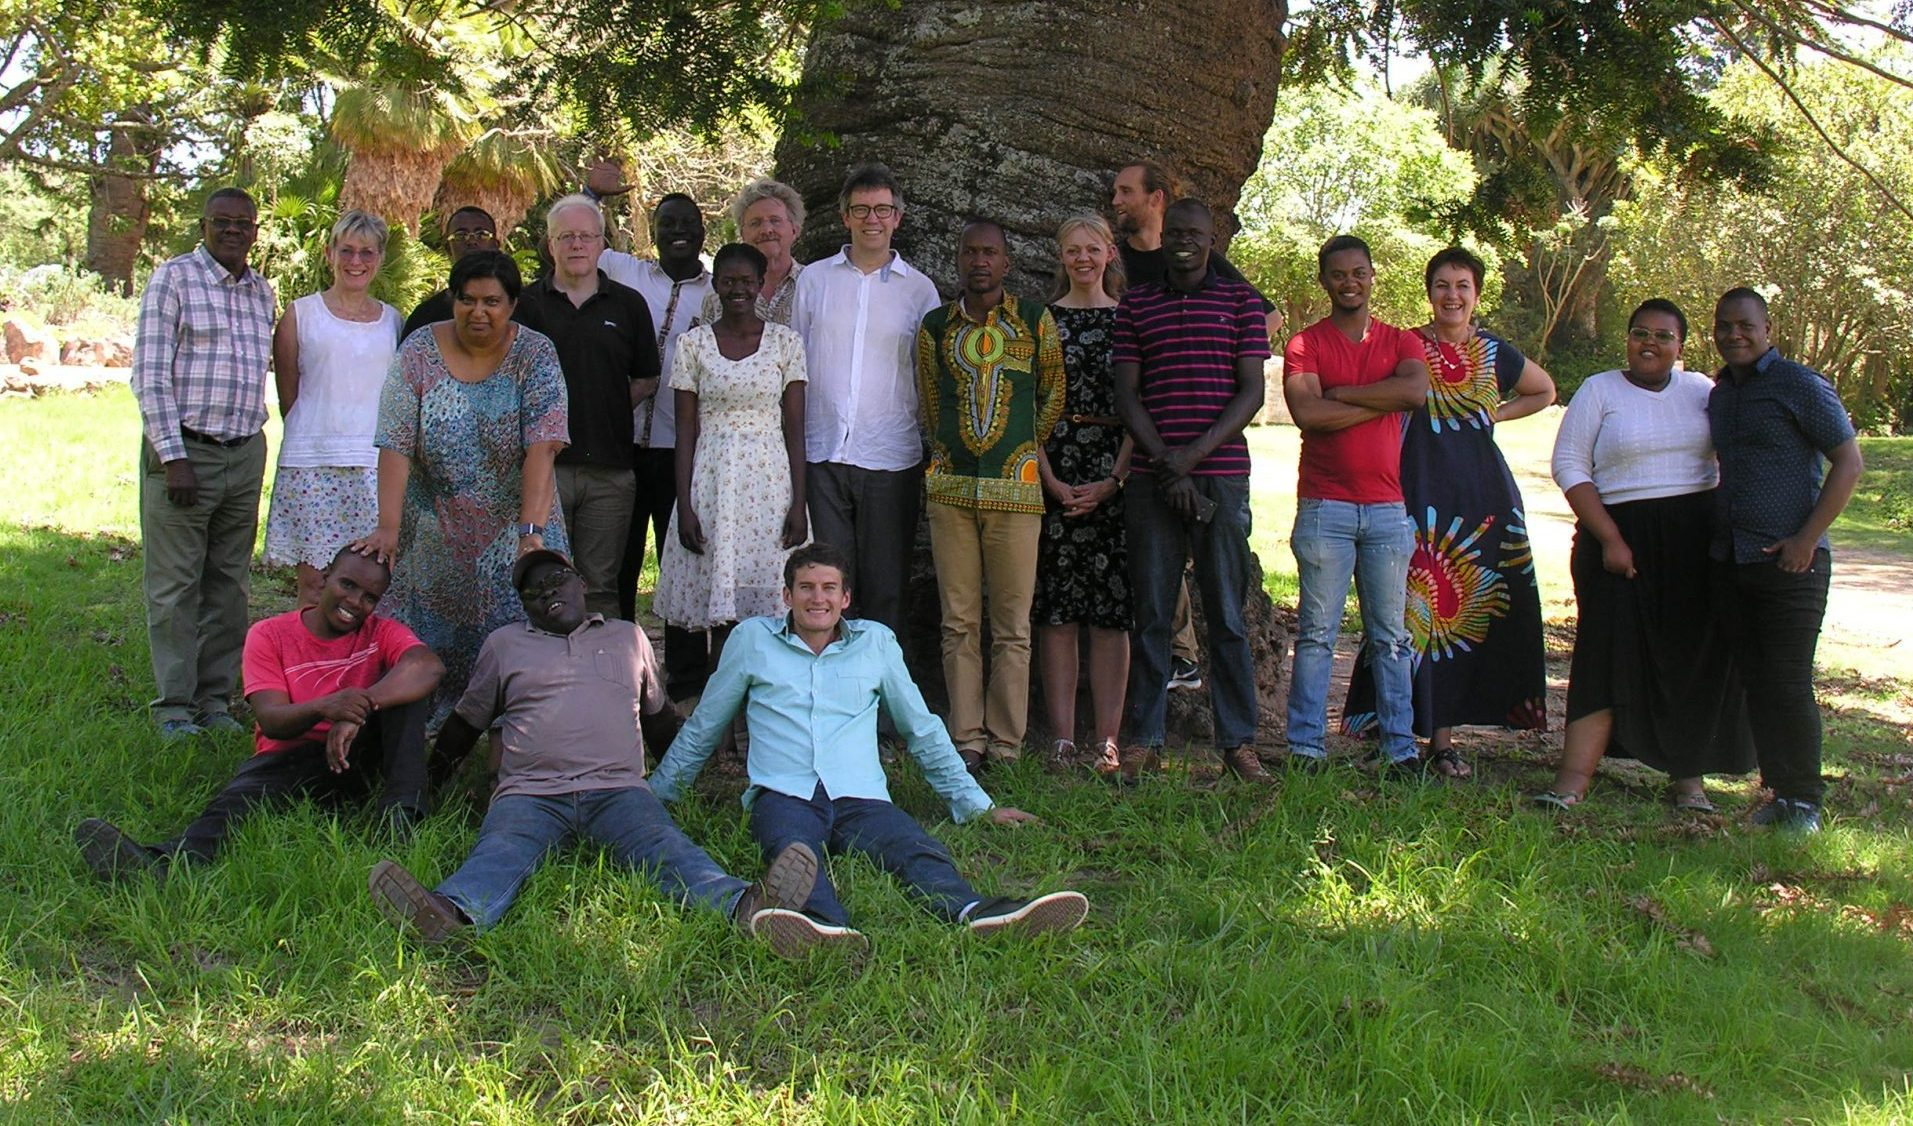 A group of colleagues from the Vet Africa 4.0 project gathered under a tree